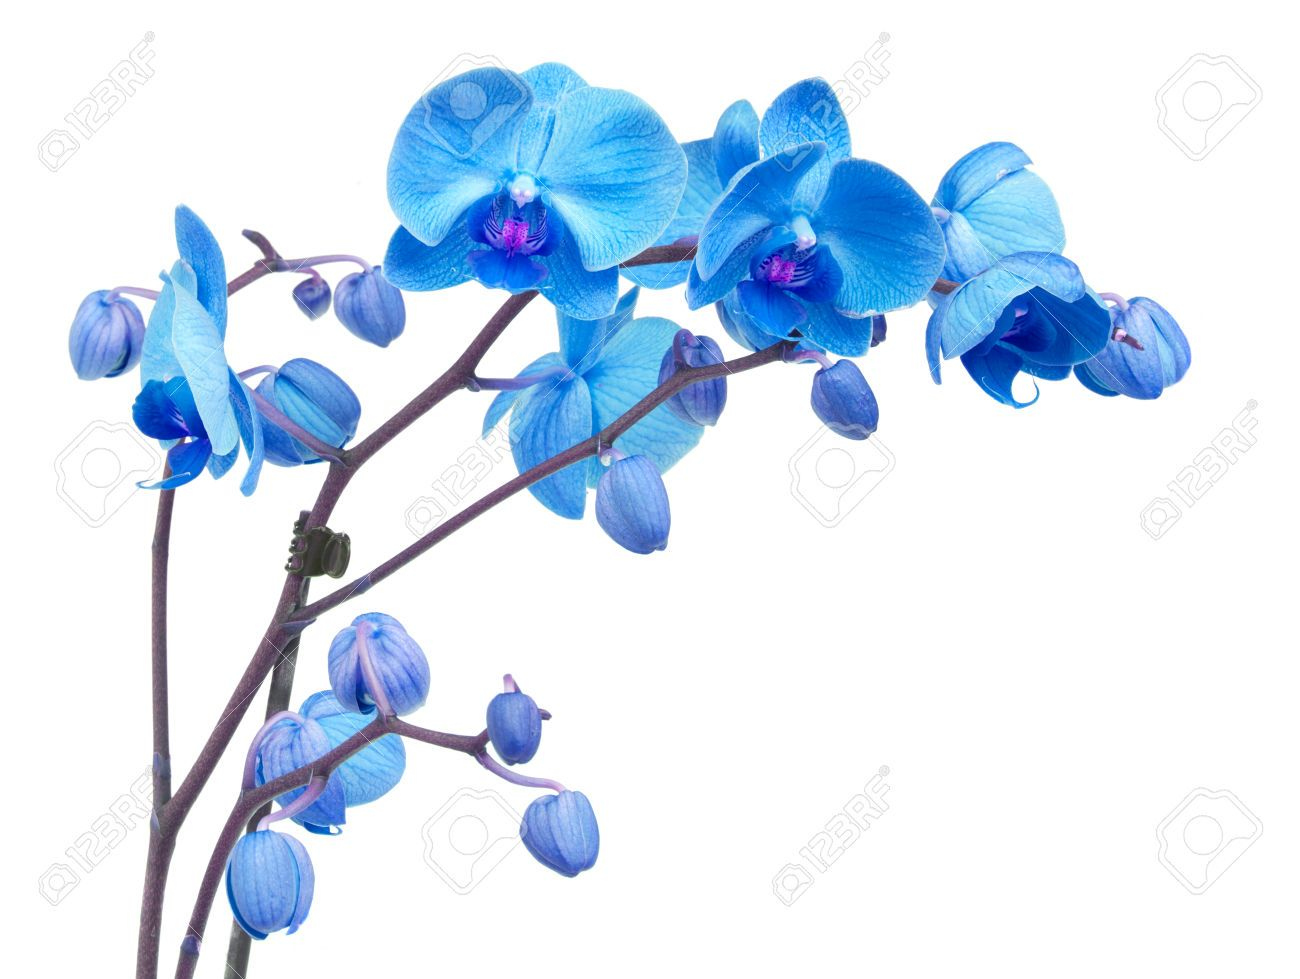 Orchid Branch With Blue Flowers Isolated On White Background Blue Flower Tattoos Blue Flowers Orchid Illustration